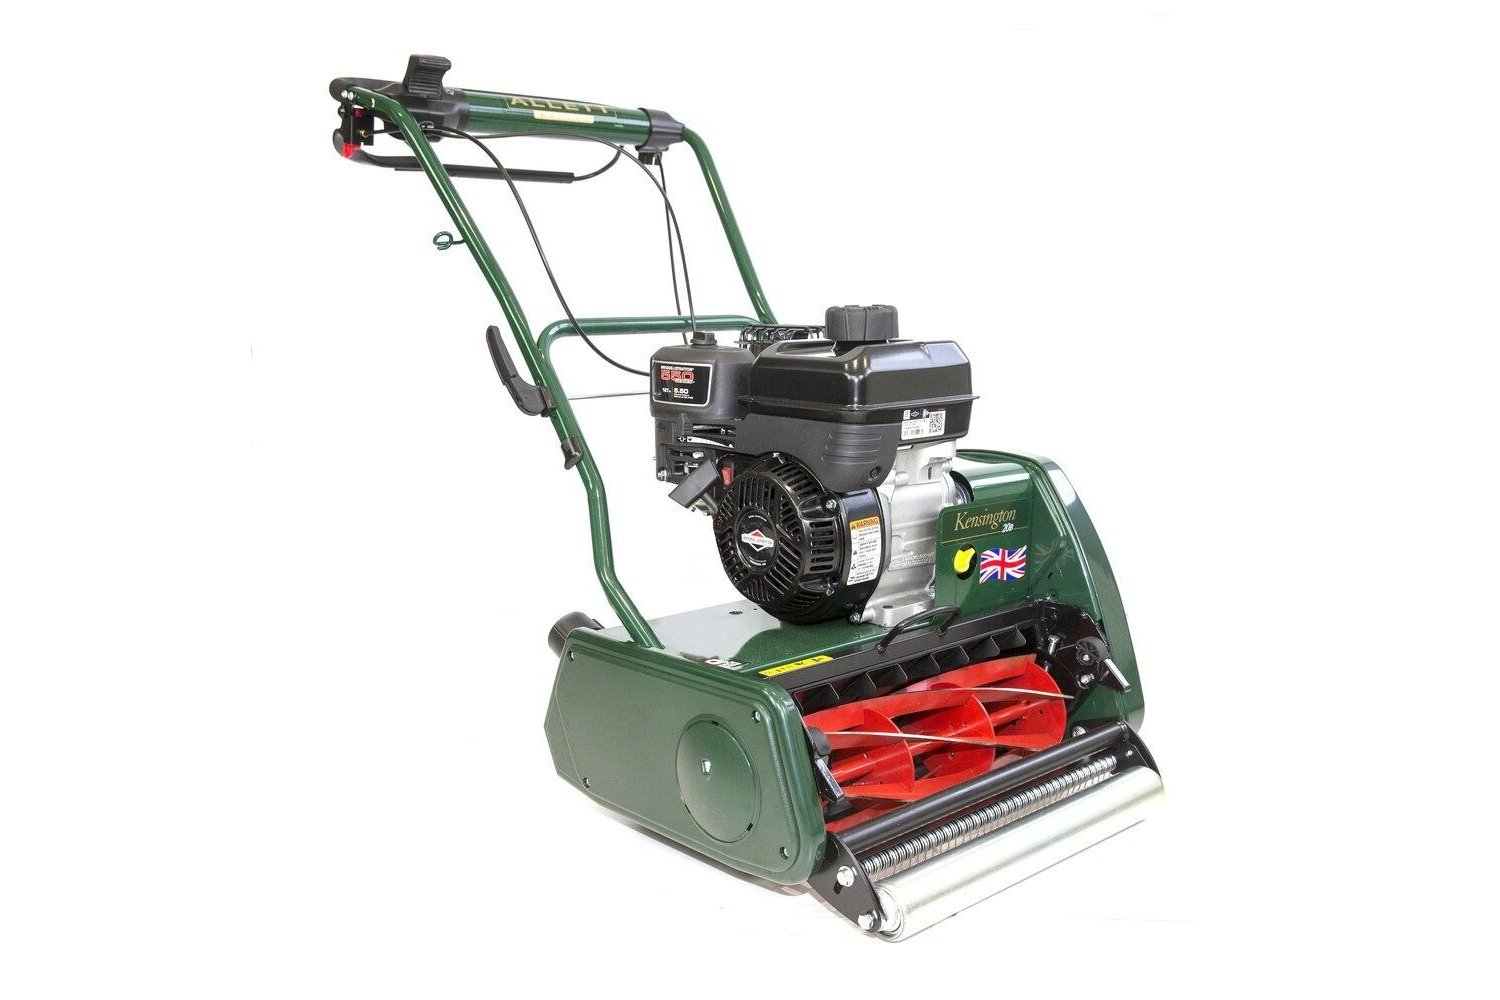 Allett Kensington 20B Petrol Cylinder Mower | Plymouth Garden Machinery